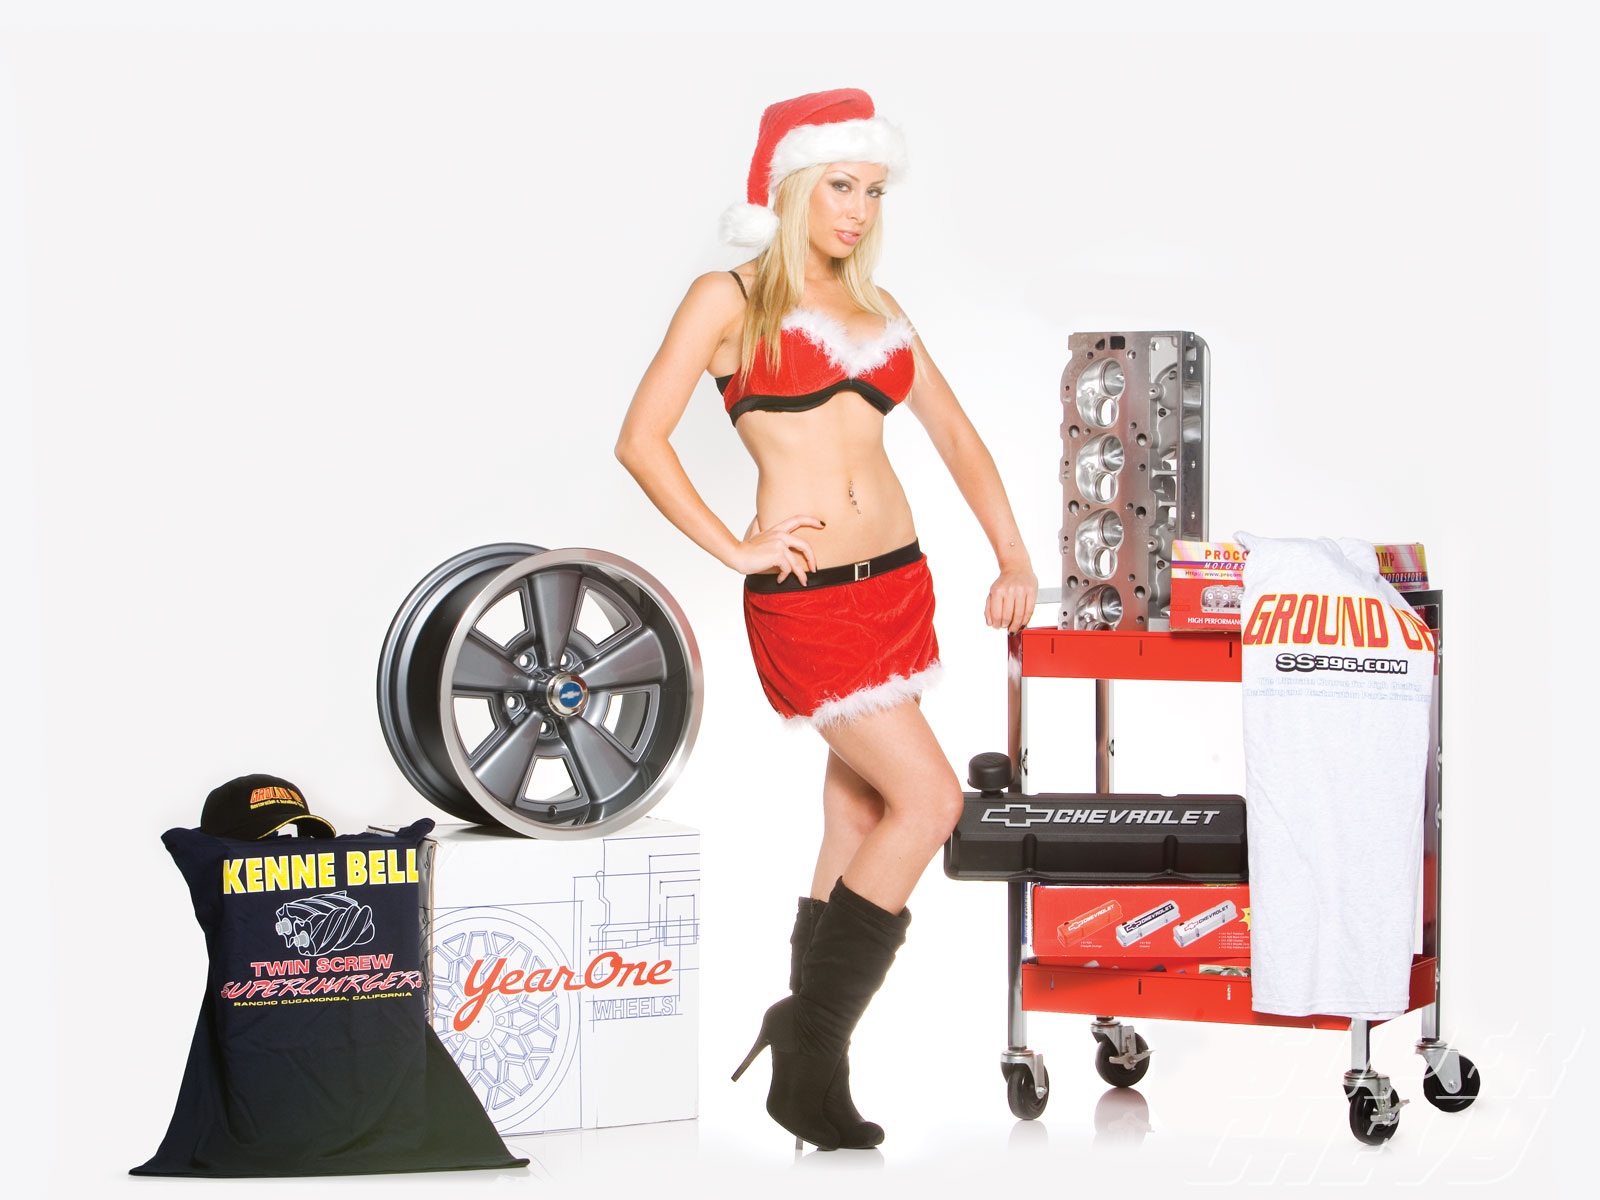 Sucp_1012_01 Super_chevy_2010_holiday_buyers_guide Model_sarah_mcDowd